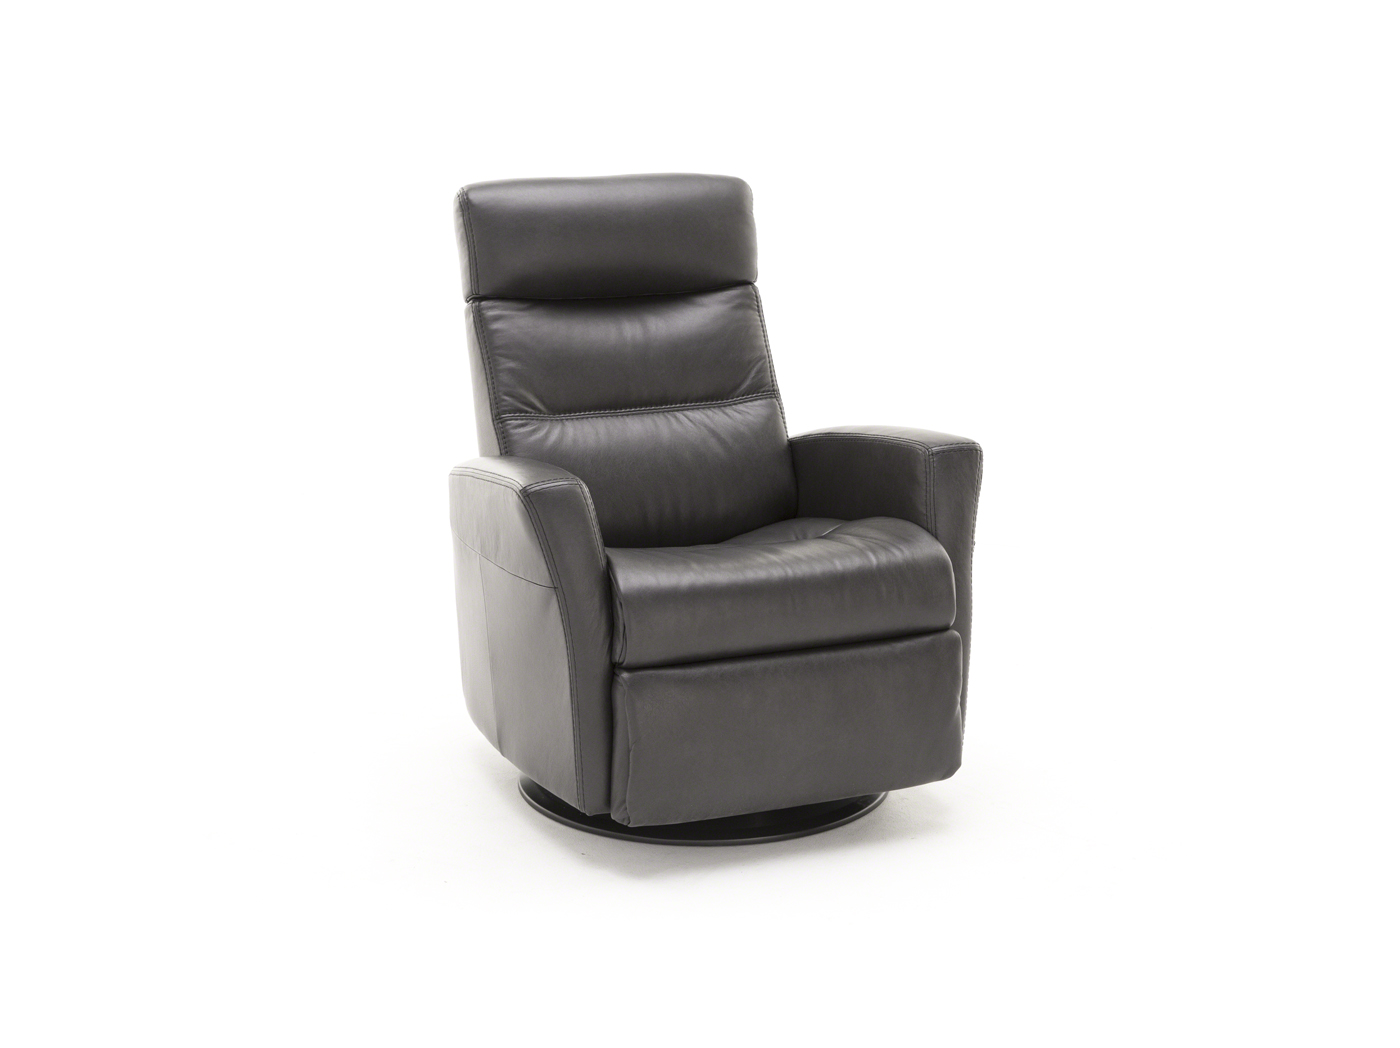 comfort sale boy like reclining on recliner home leather for your and lazy room don man stylish t so recliners tall any look in wide furniture that oversized